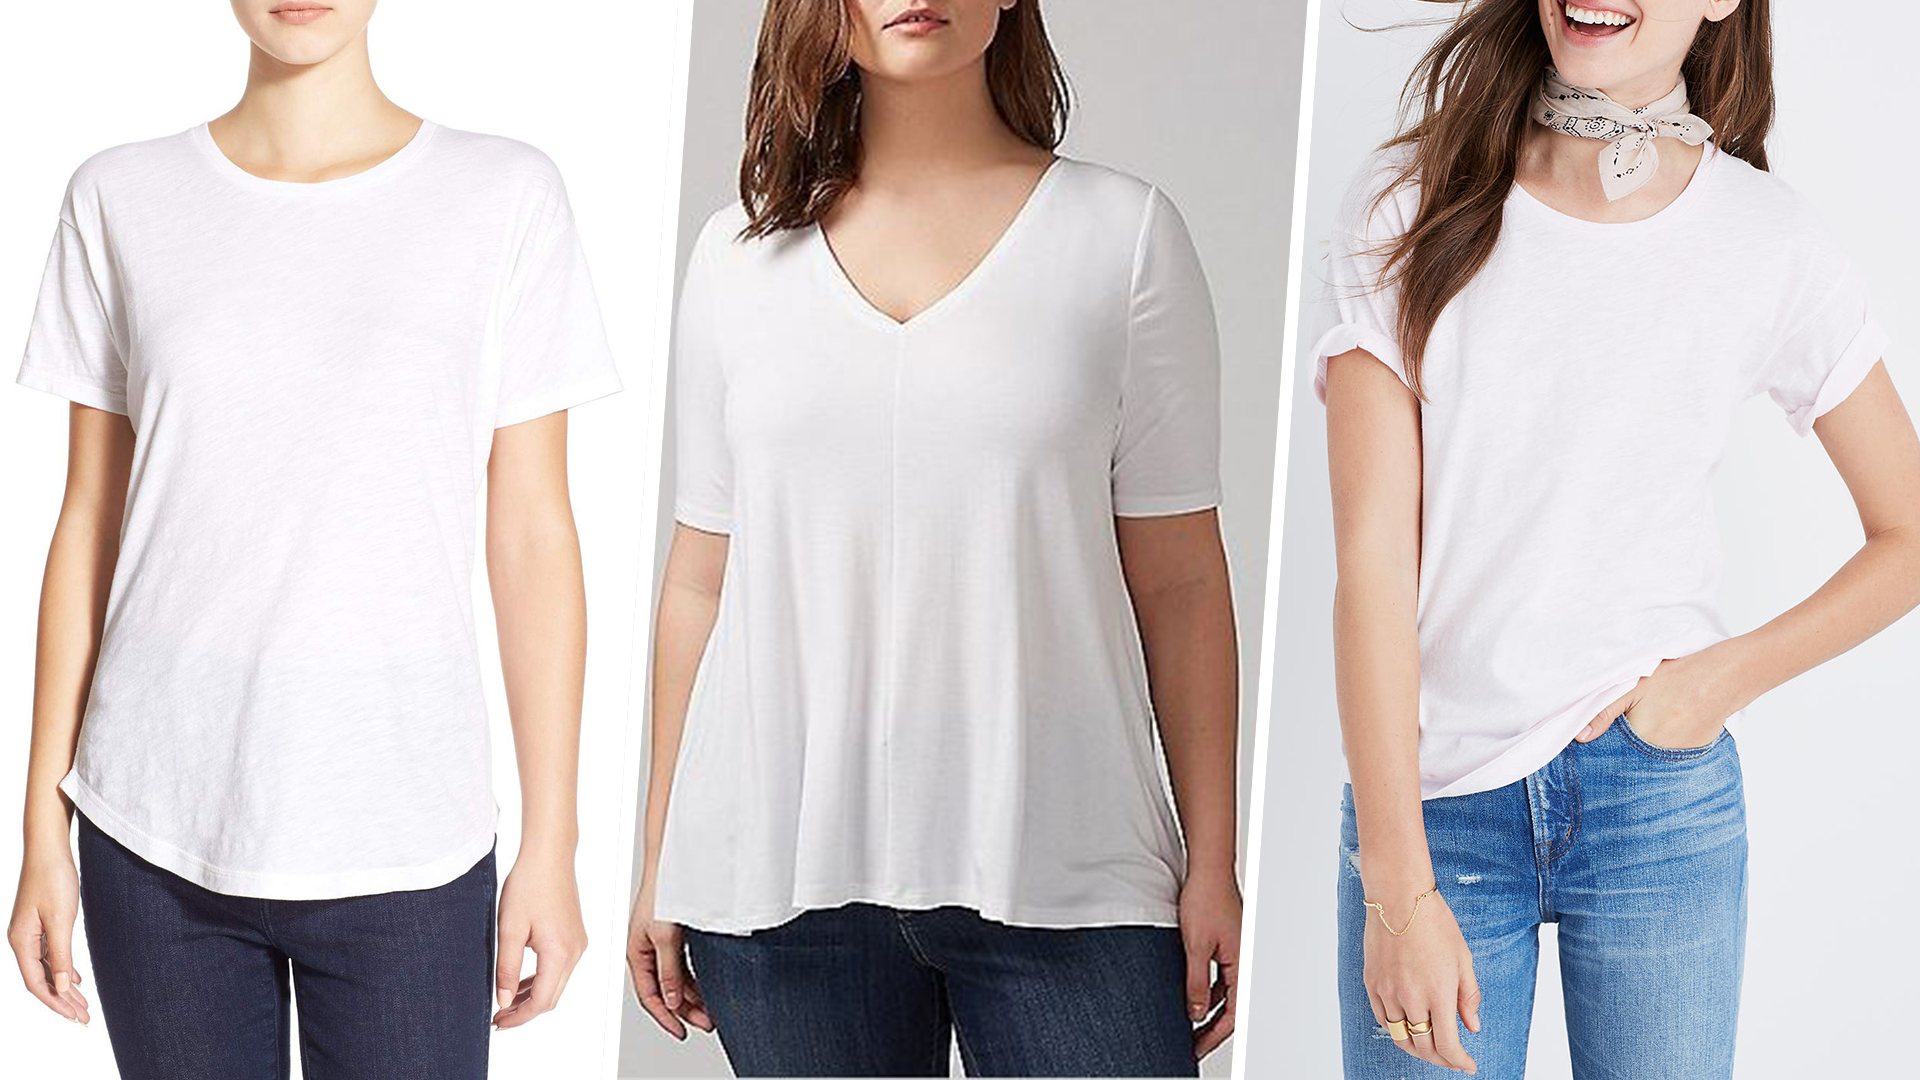 e73dd3db The best white T-shirts for women by outfit